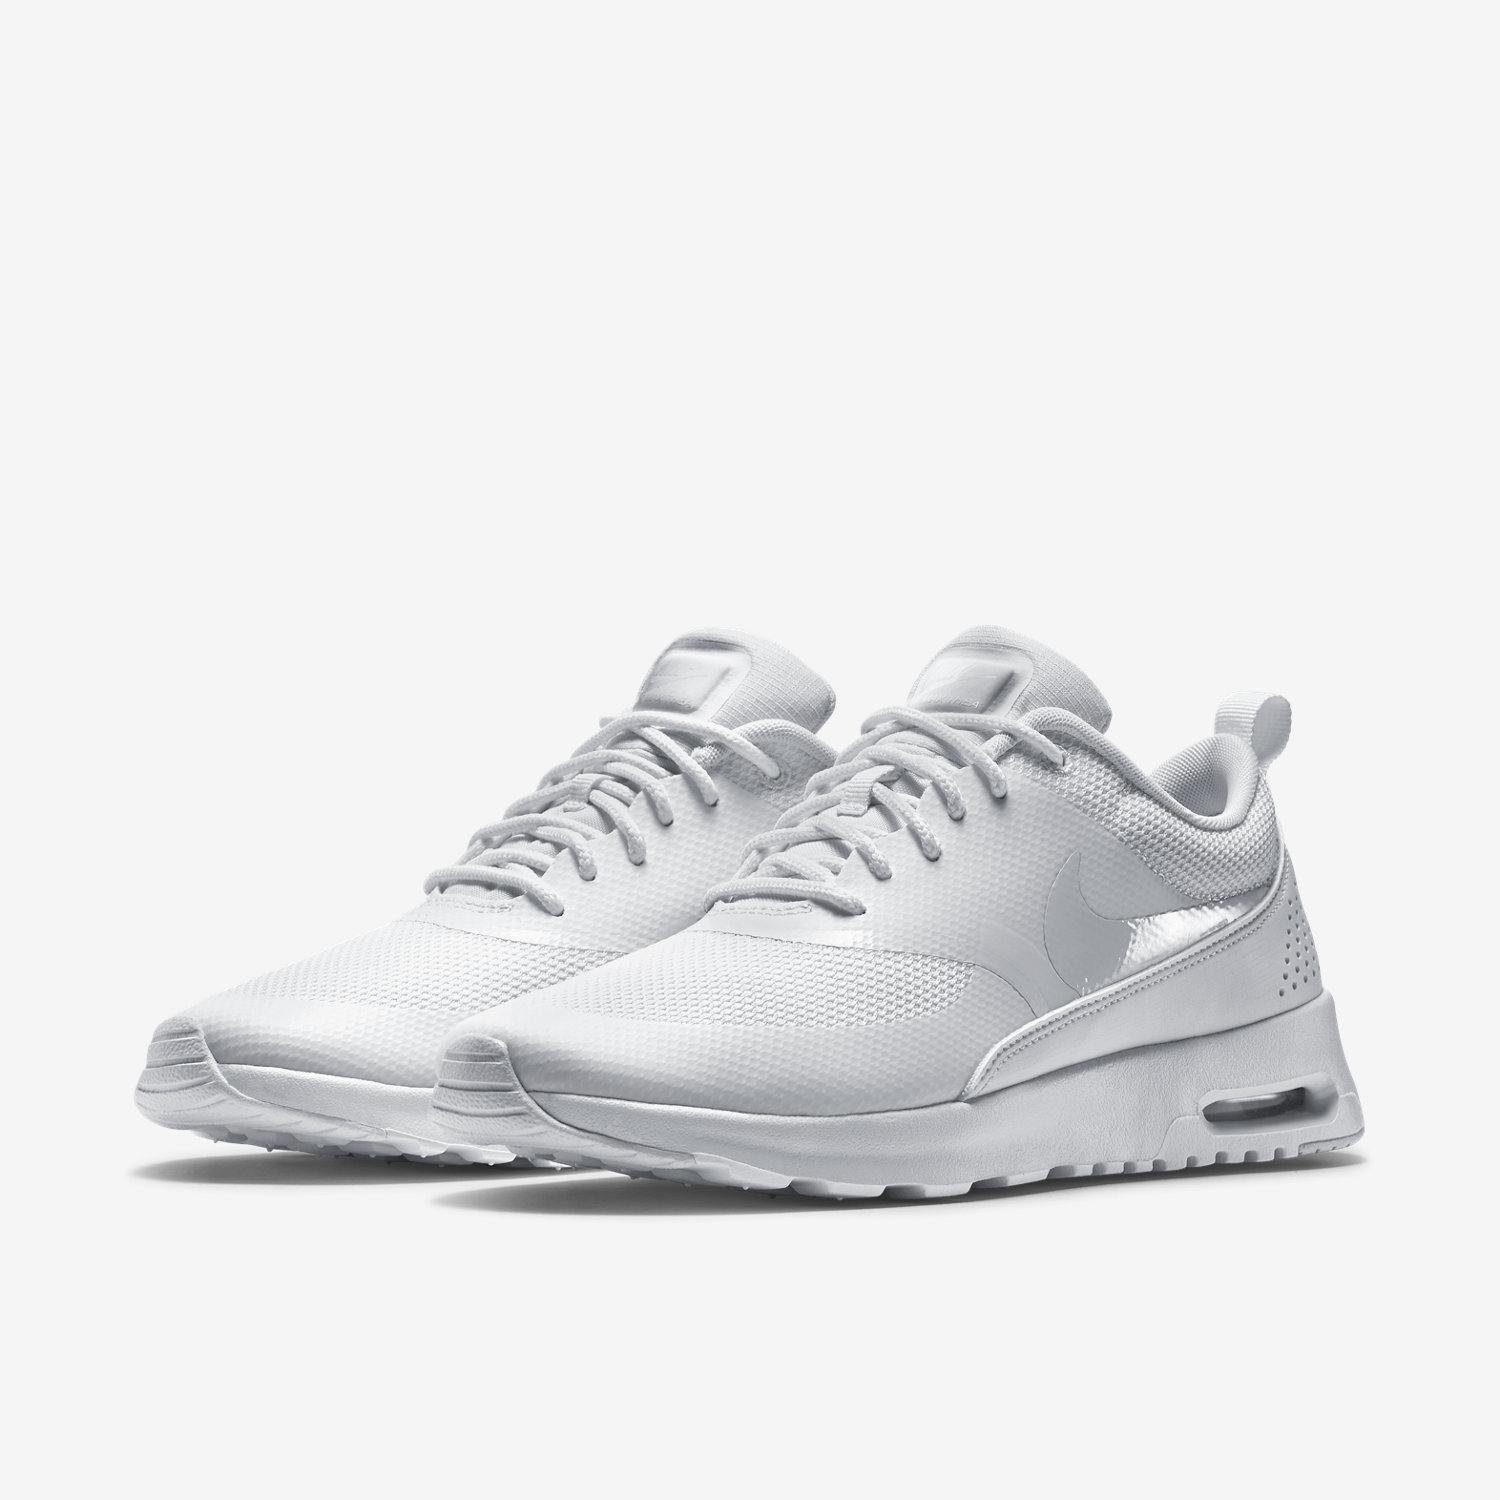 Nike Air Max Thea, 65, (4053 Haid) willhaben